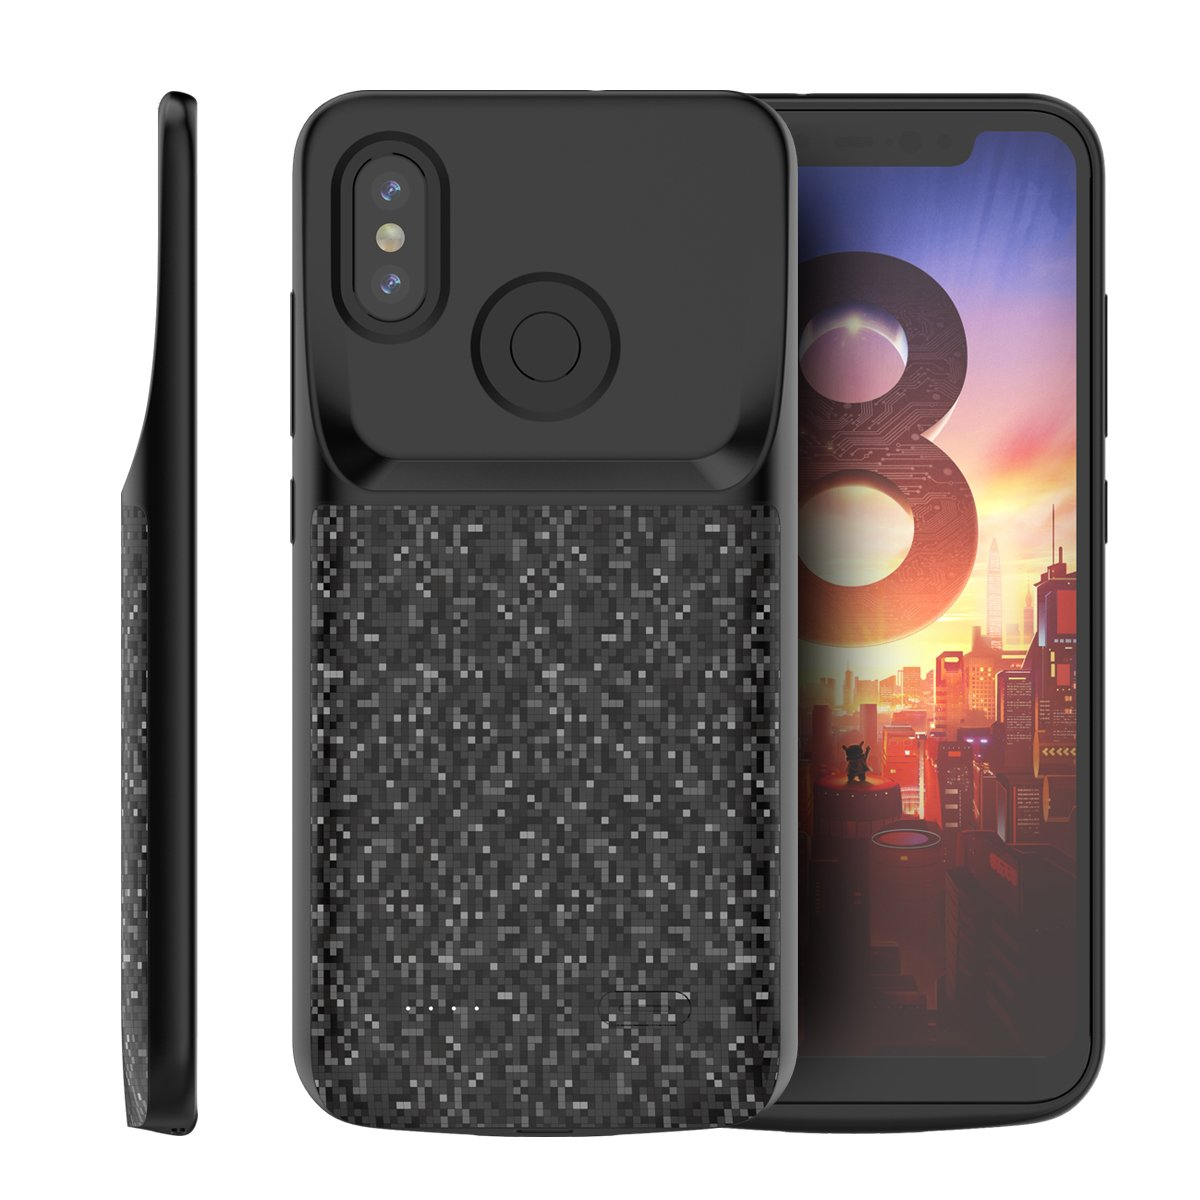 Codream Xiaomi Mi 8 Battery Case, Portable Charging Case Xiaomi Mi 8 Extended Battery Juice Pack Power Bank ()